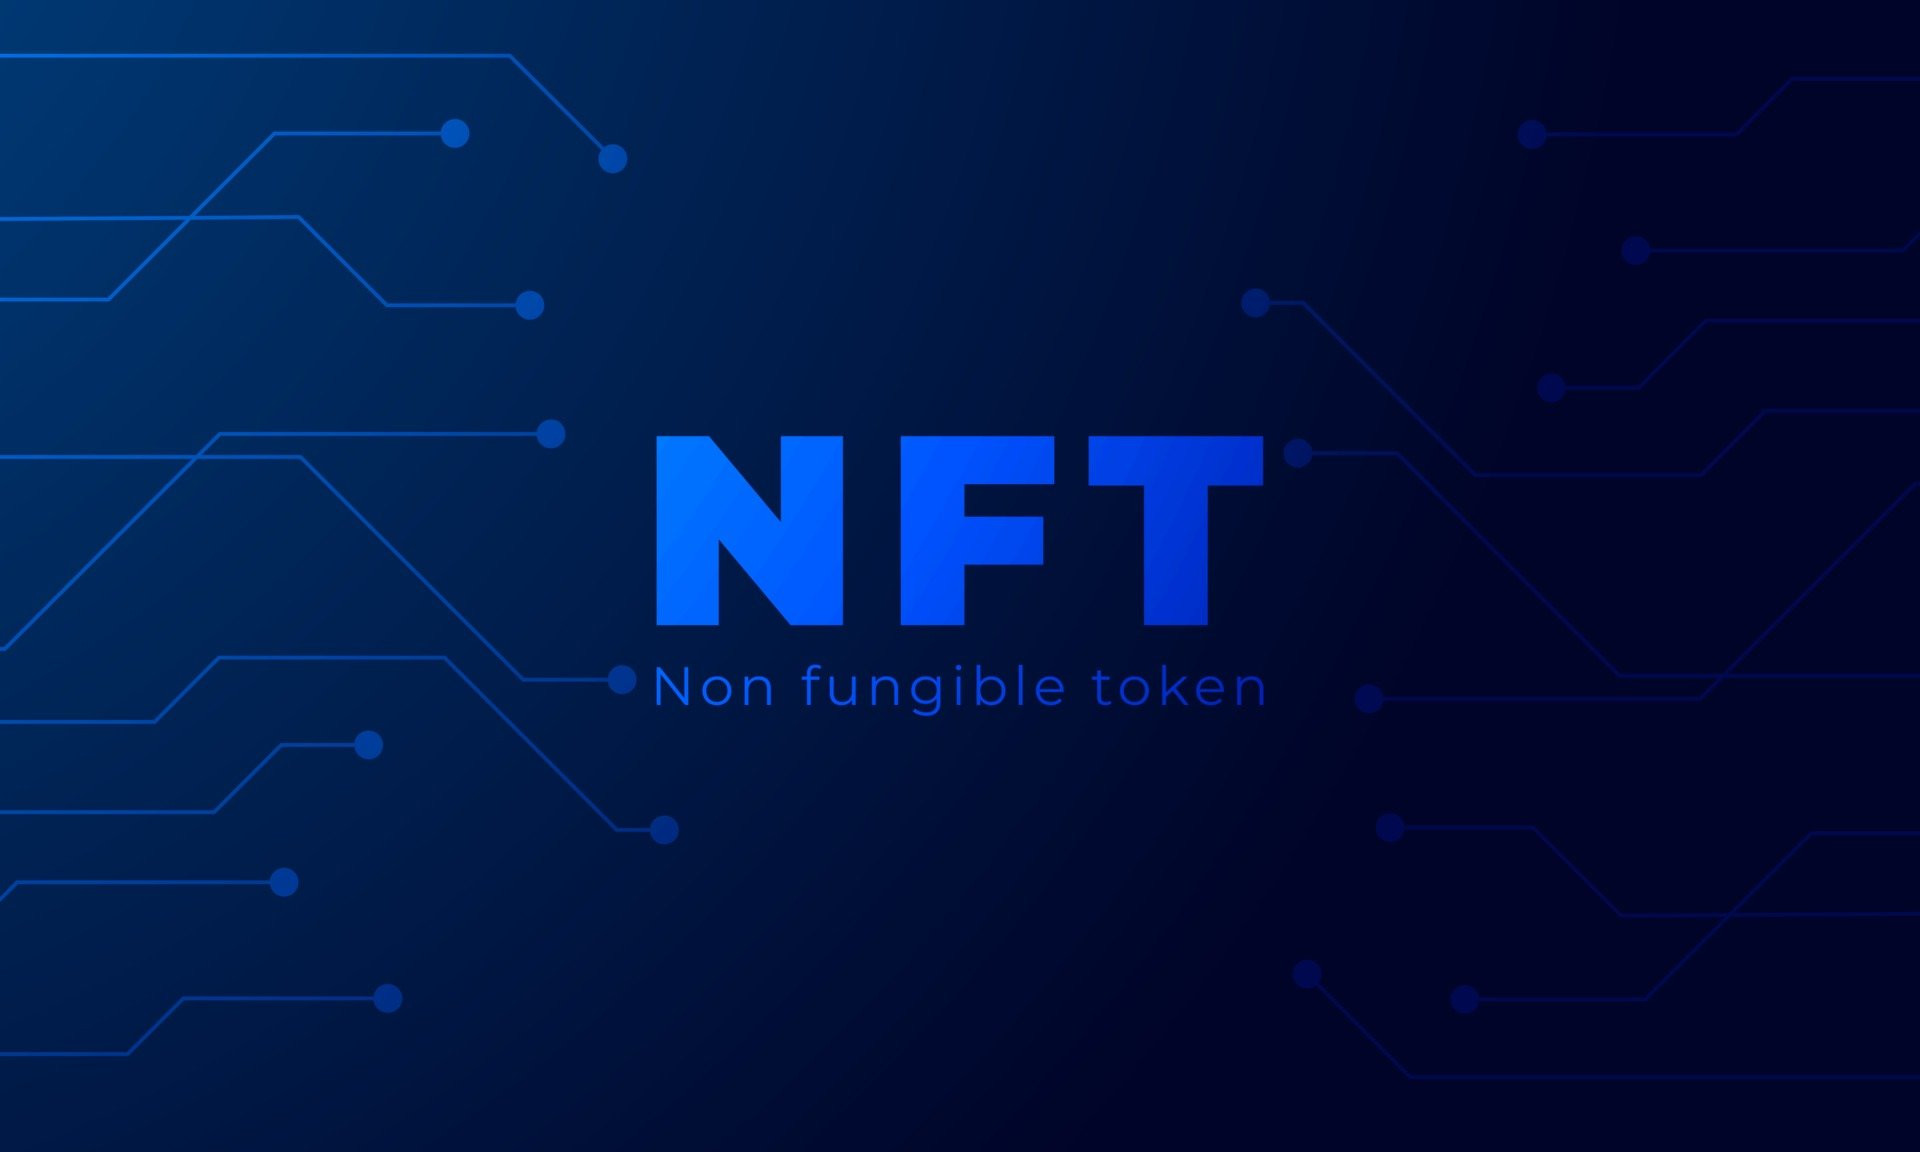 NFT image for musicians buying and selling music with non-fungible token